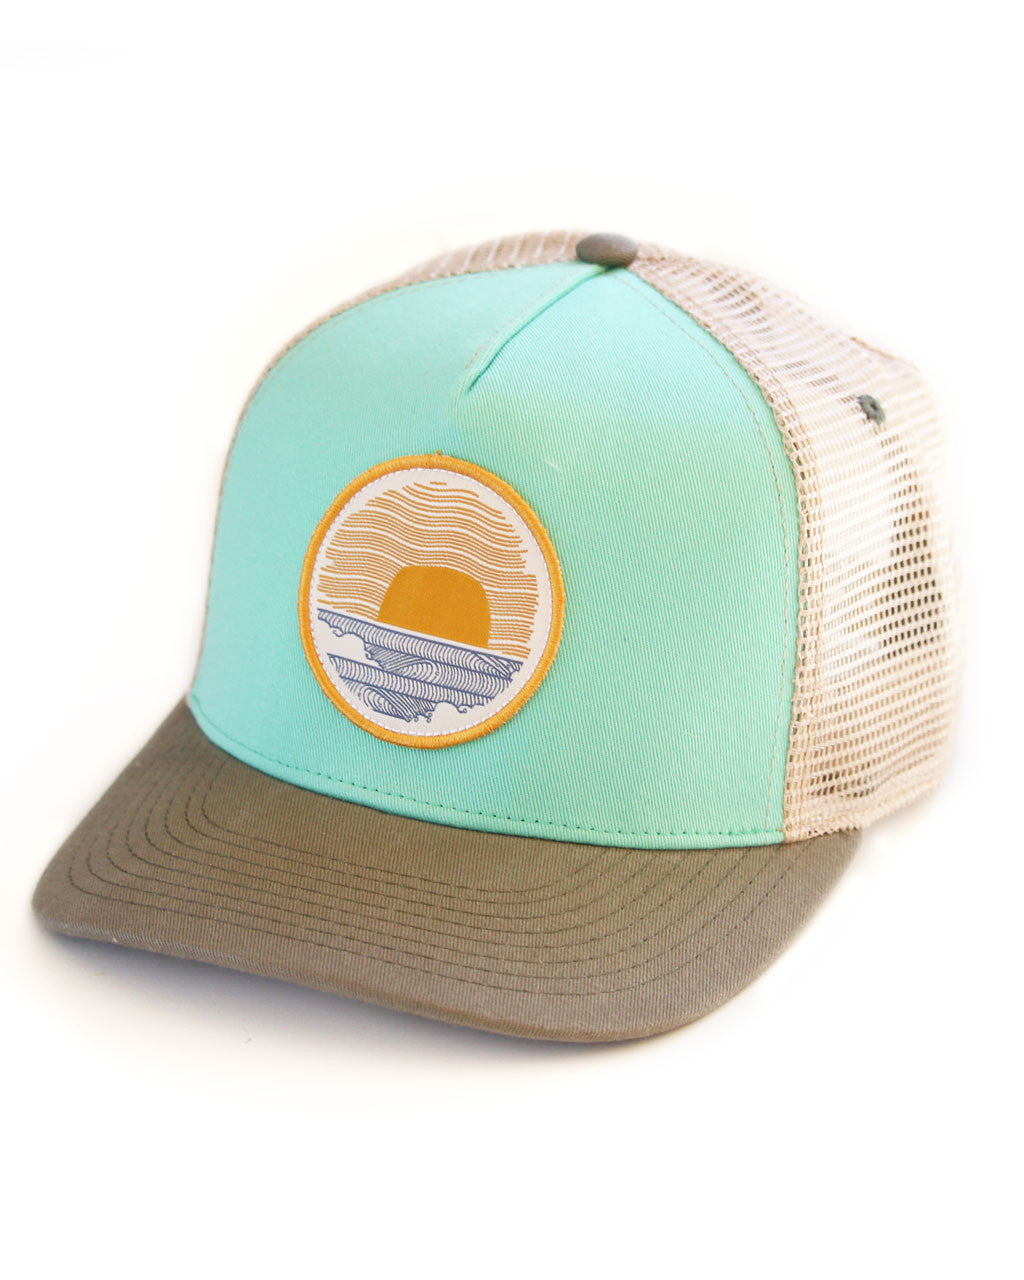 Sundance Beach Wavey Dayz Womens Surfer Trucker Hat Green